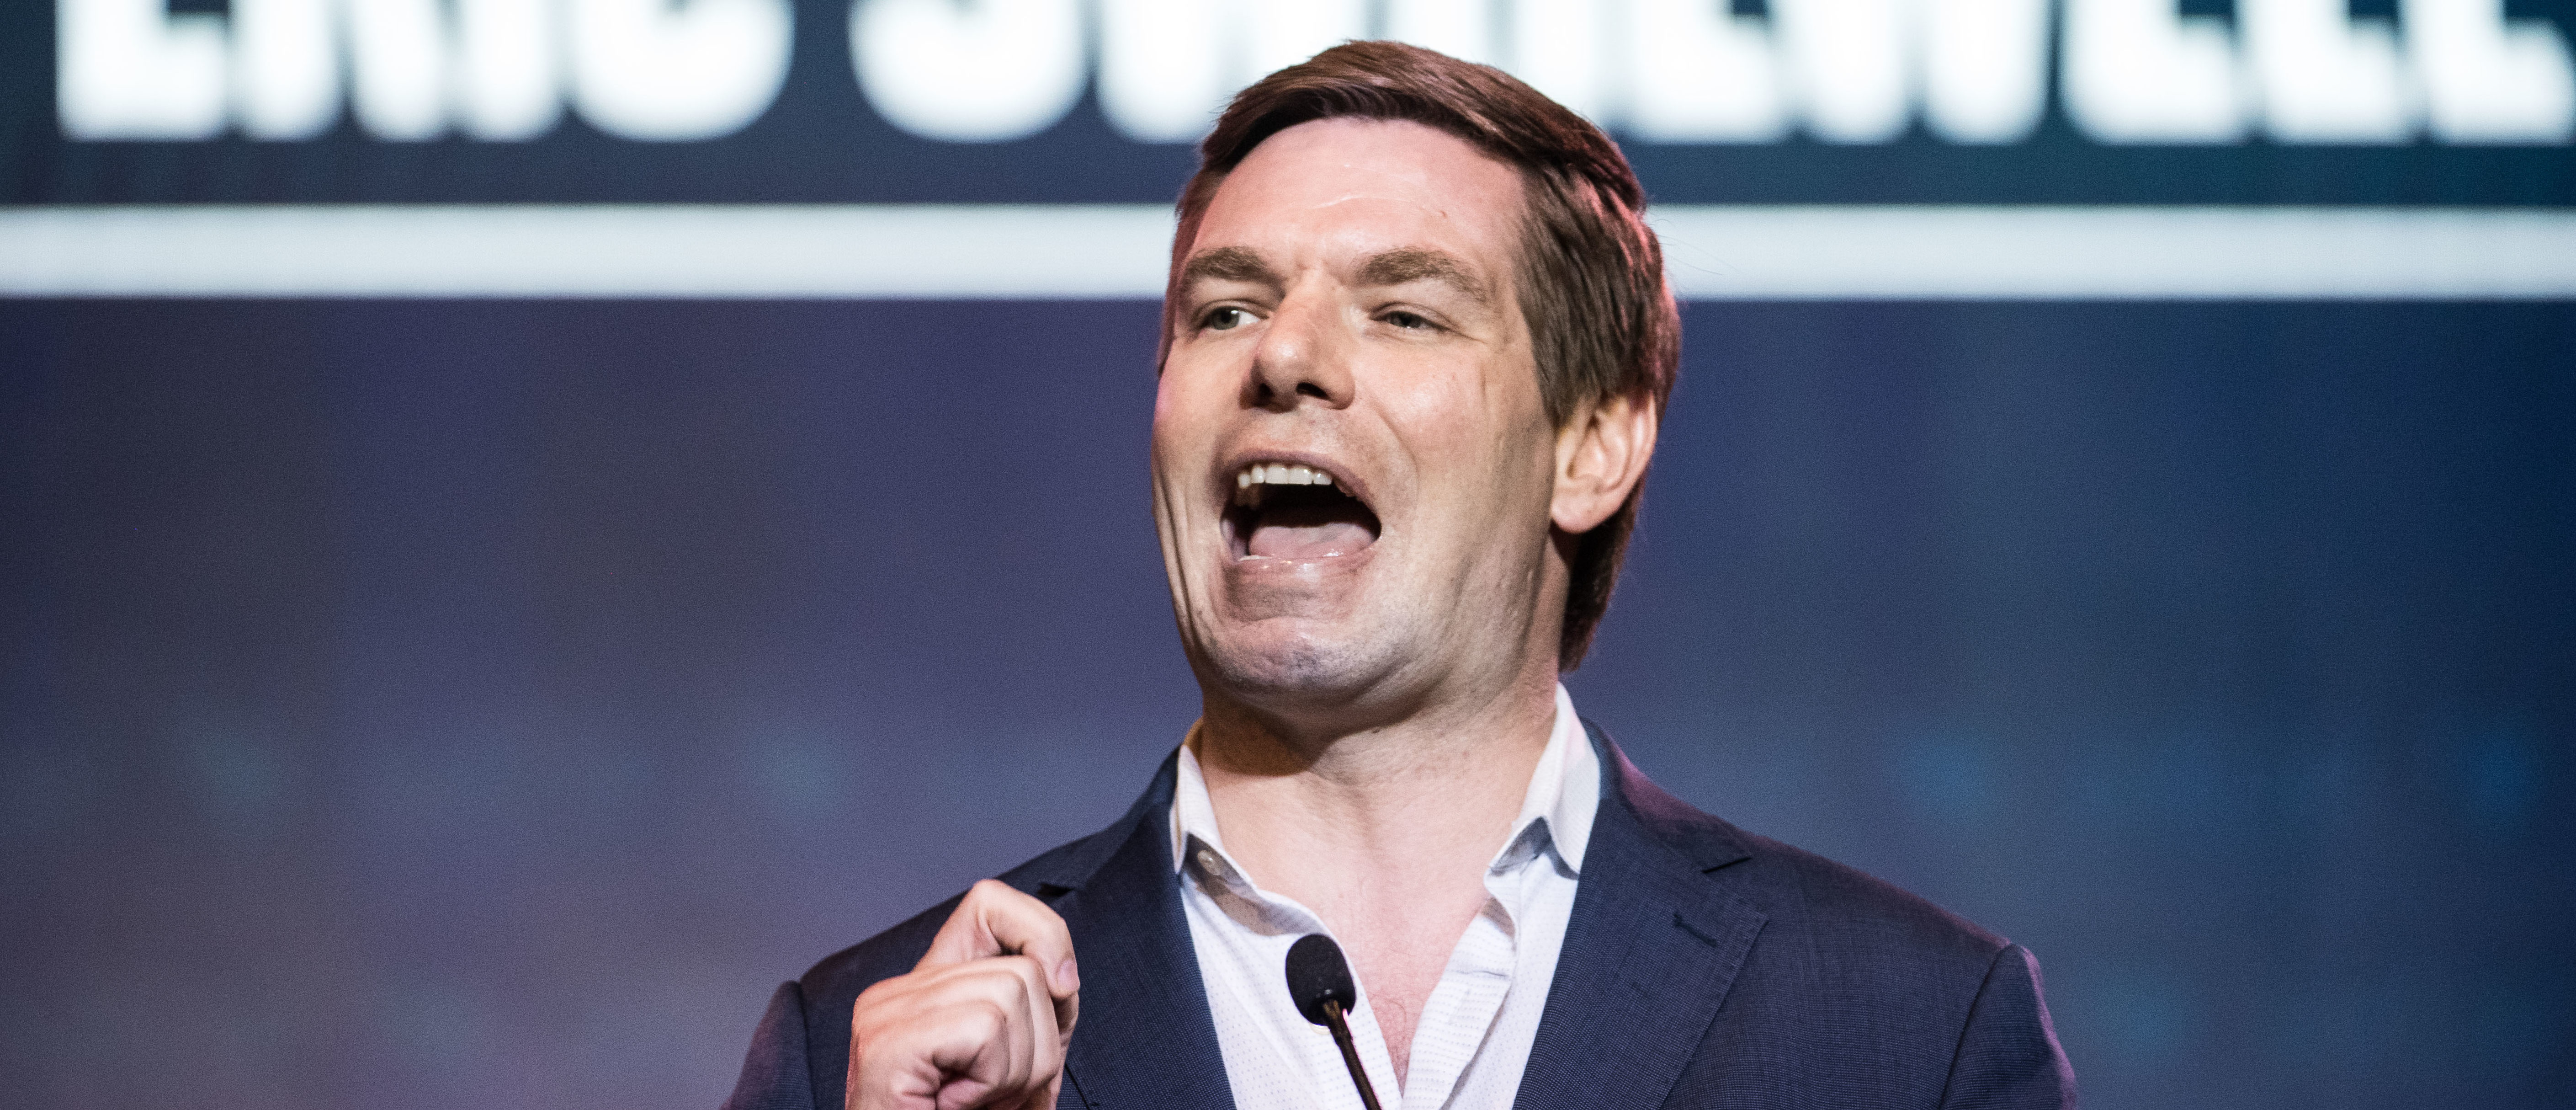 Democratic presidential candidate Rep. Eric Swalwell (D-CA) speaks to the crowd during the 2019 South Carolina Democratic Party State Convention on June 22, 2019 in Columbia, South Carolina. (Sean Rayford/Getty Images)